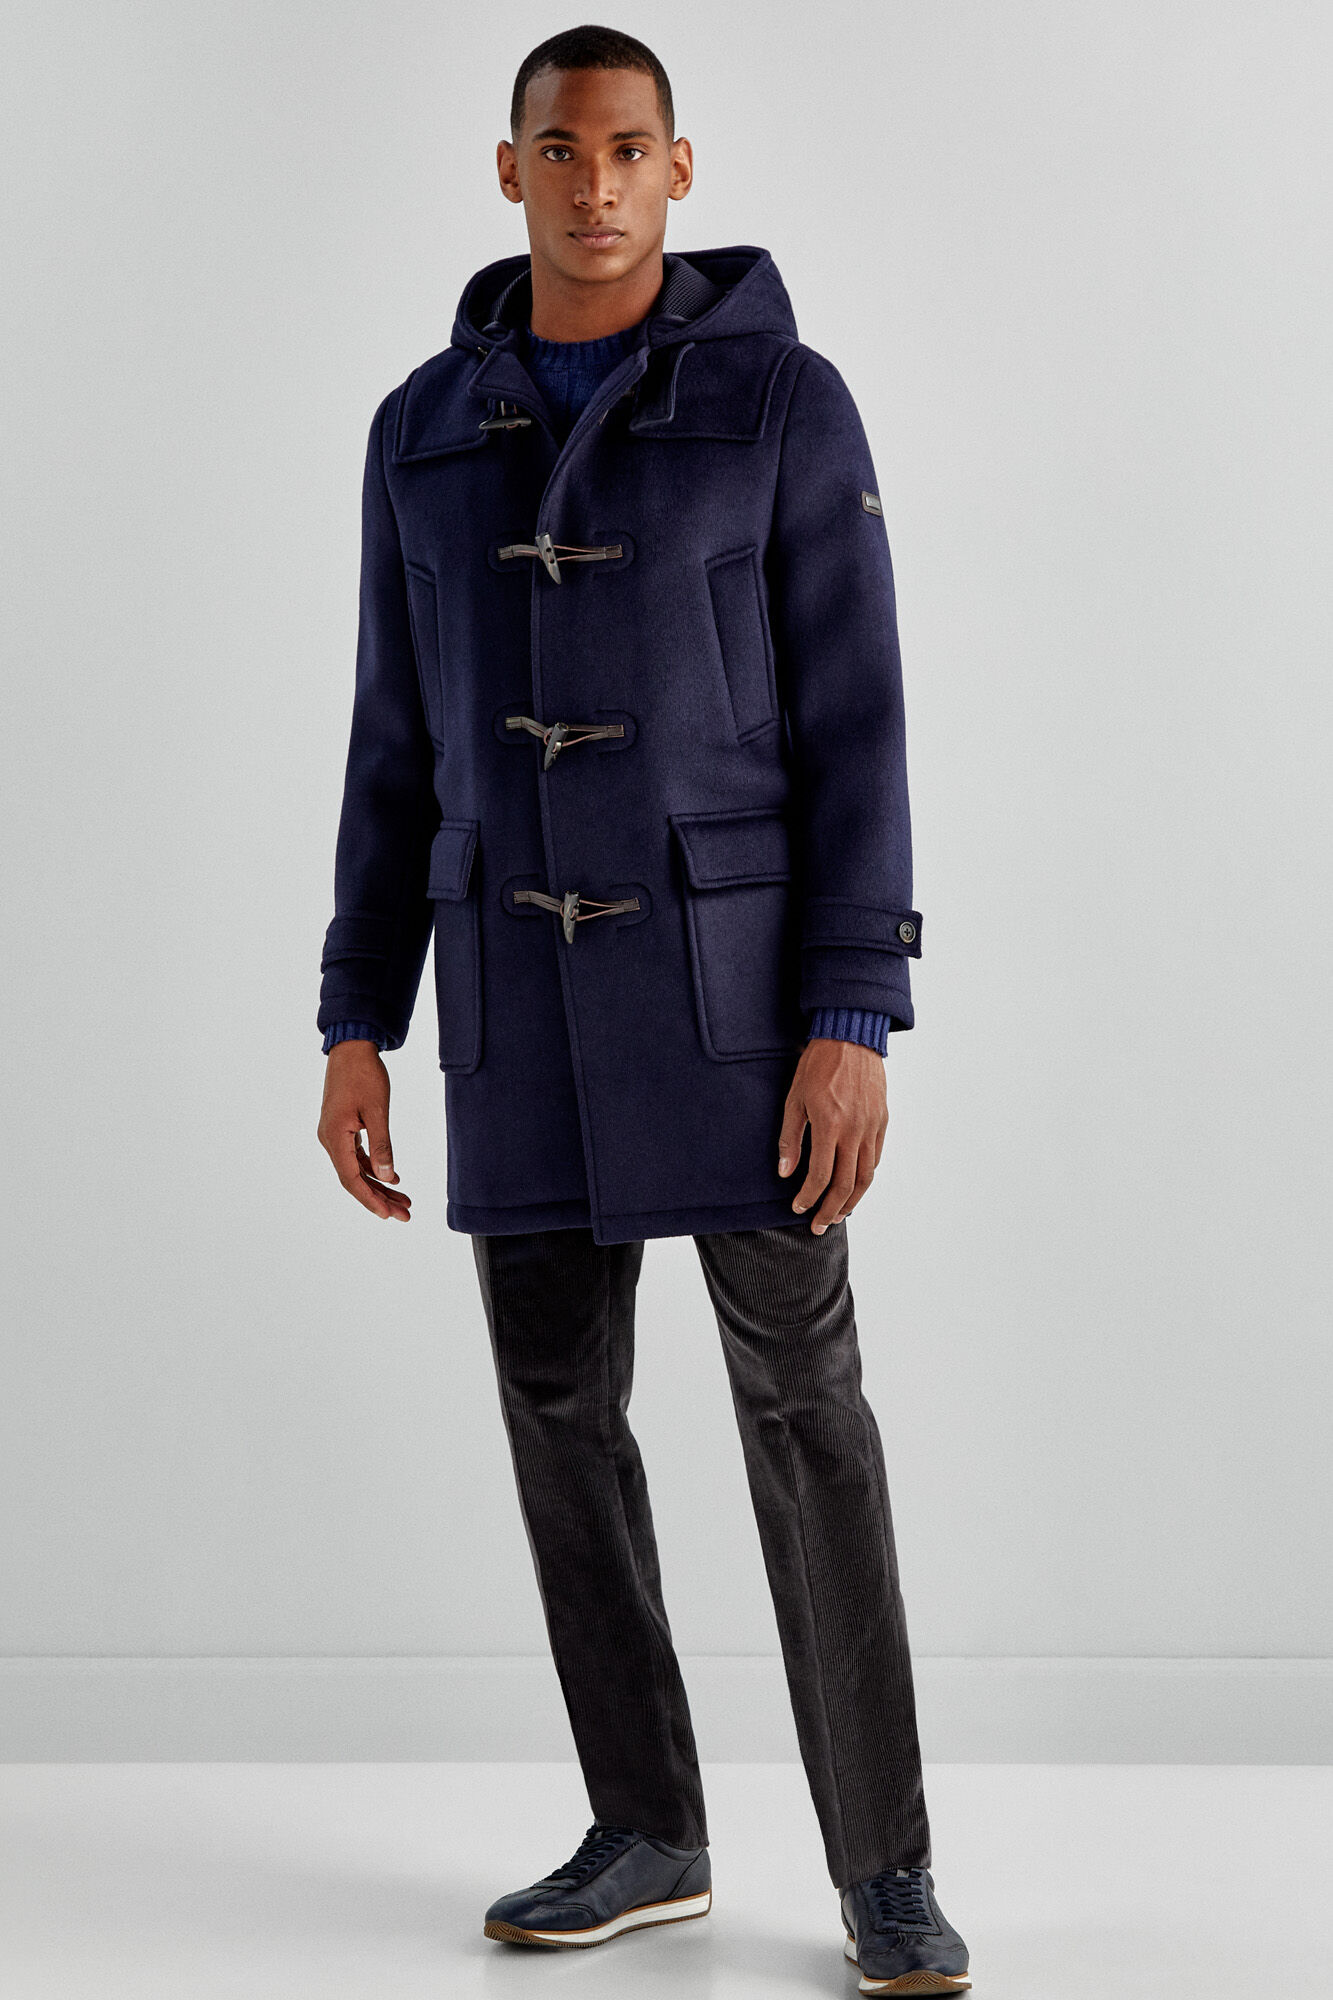 2018 Online Del Shop Winter Pedro Hierro Fall Collection w0TRnqZ4q